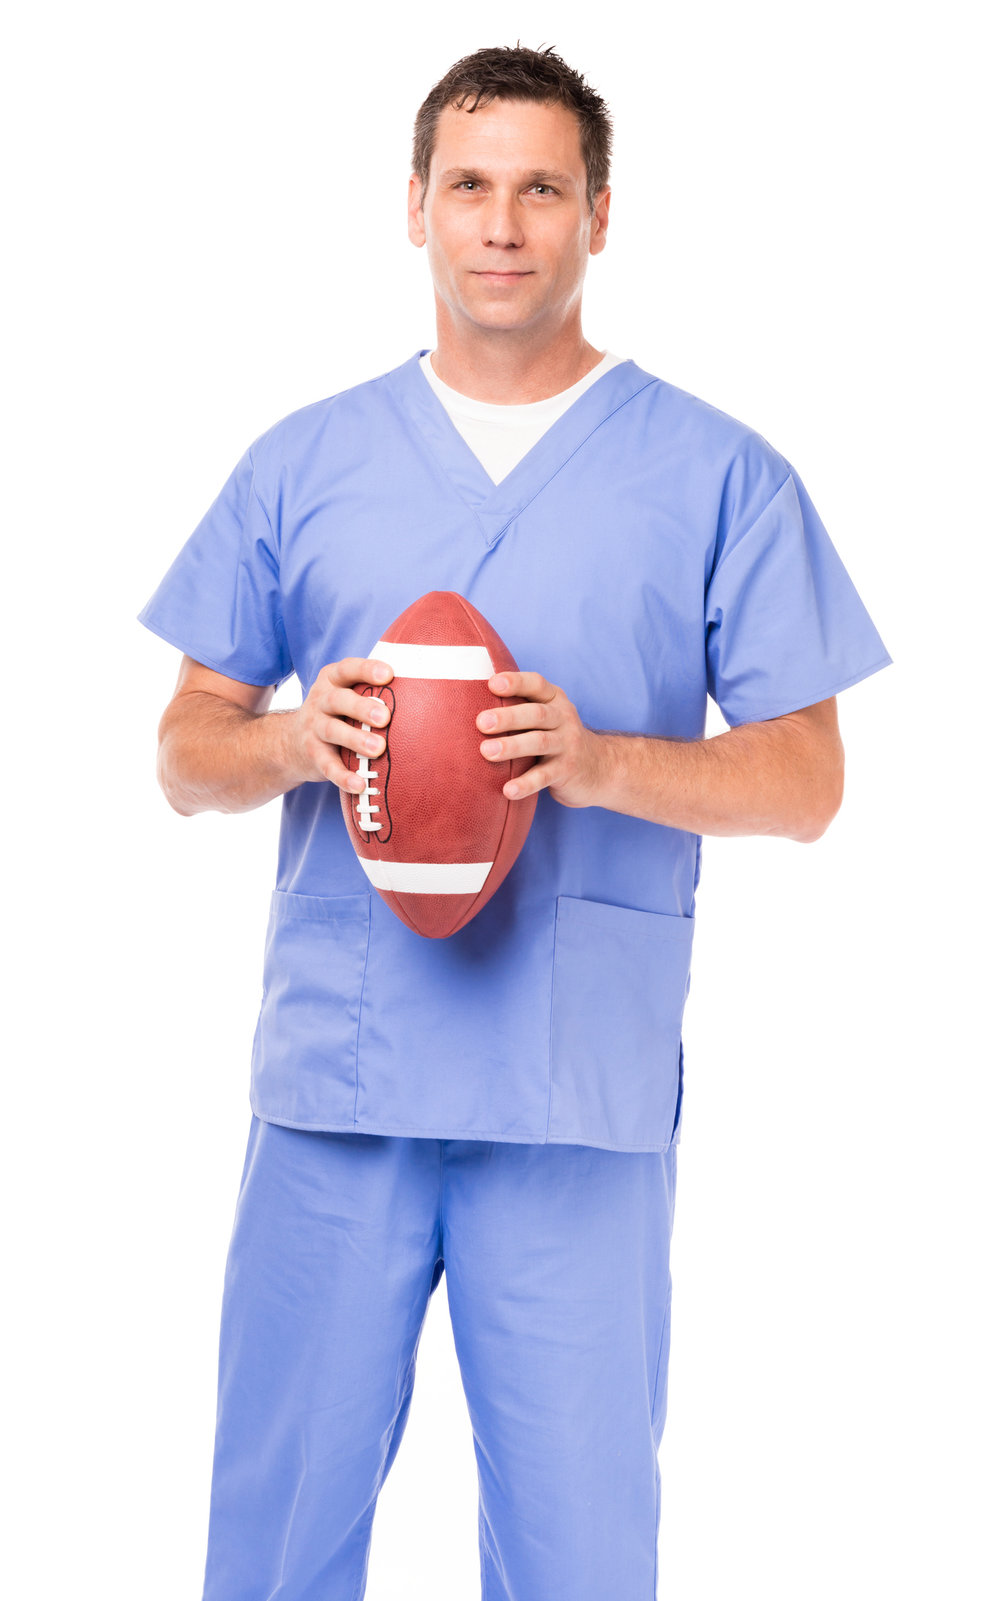 In football, the quarterback is the highest paid member of the team. -